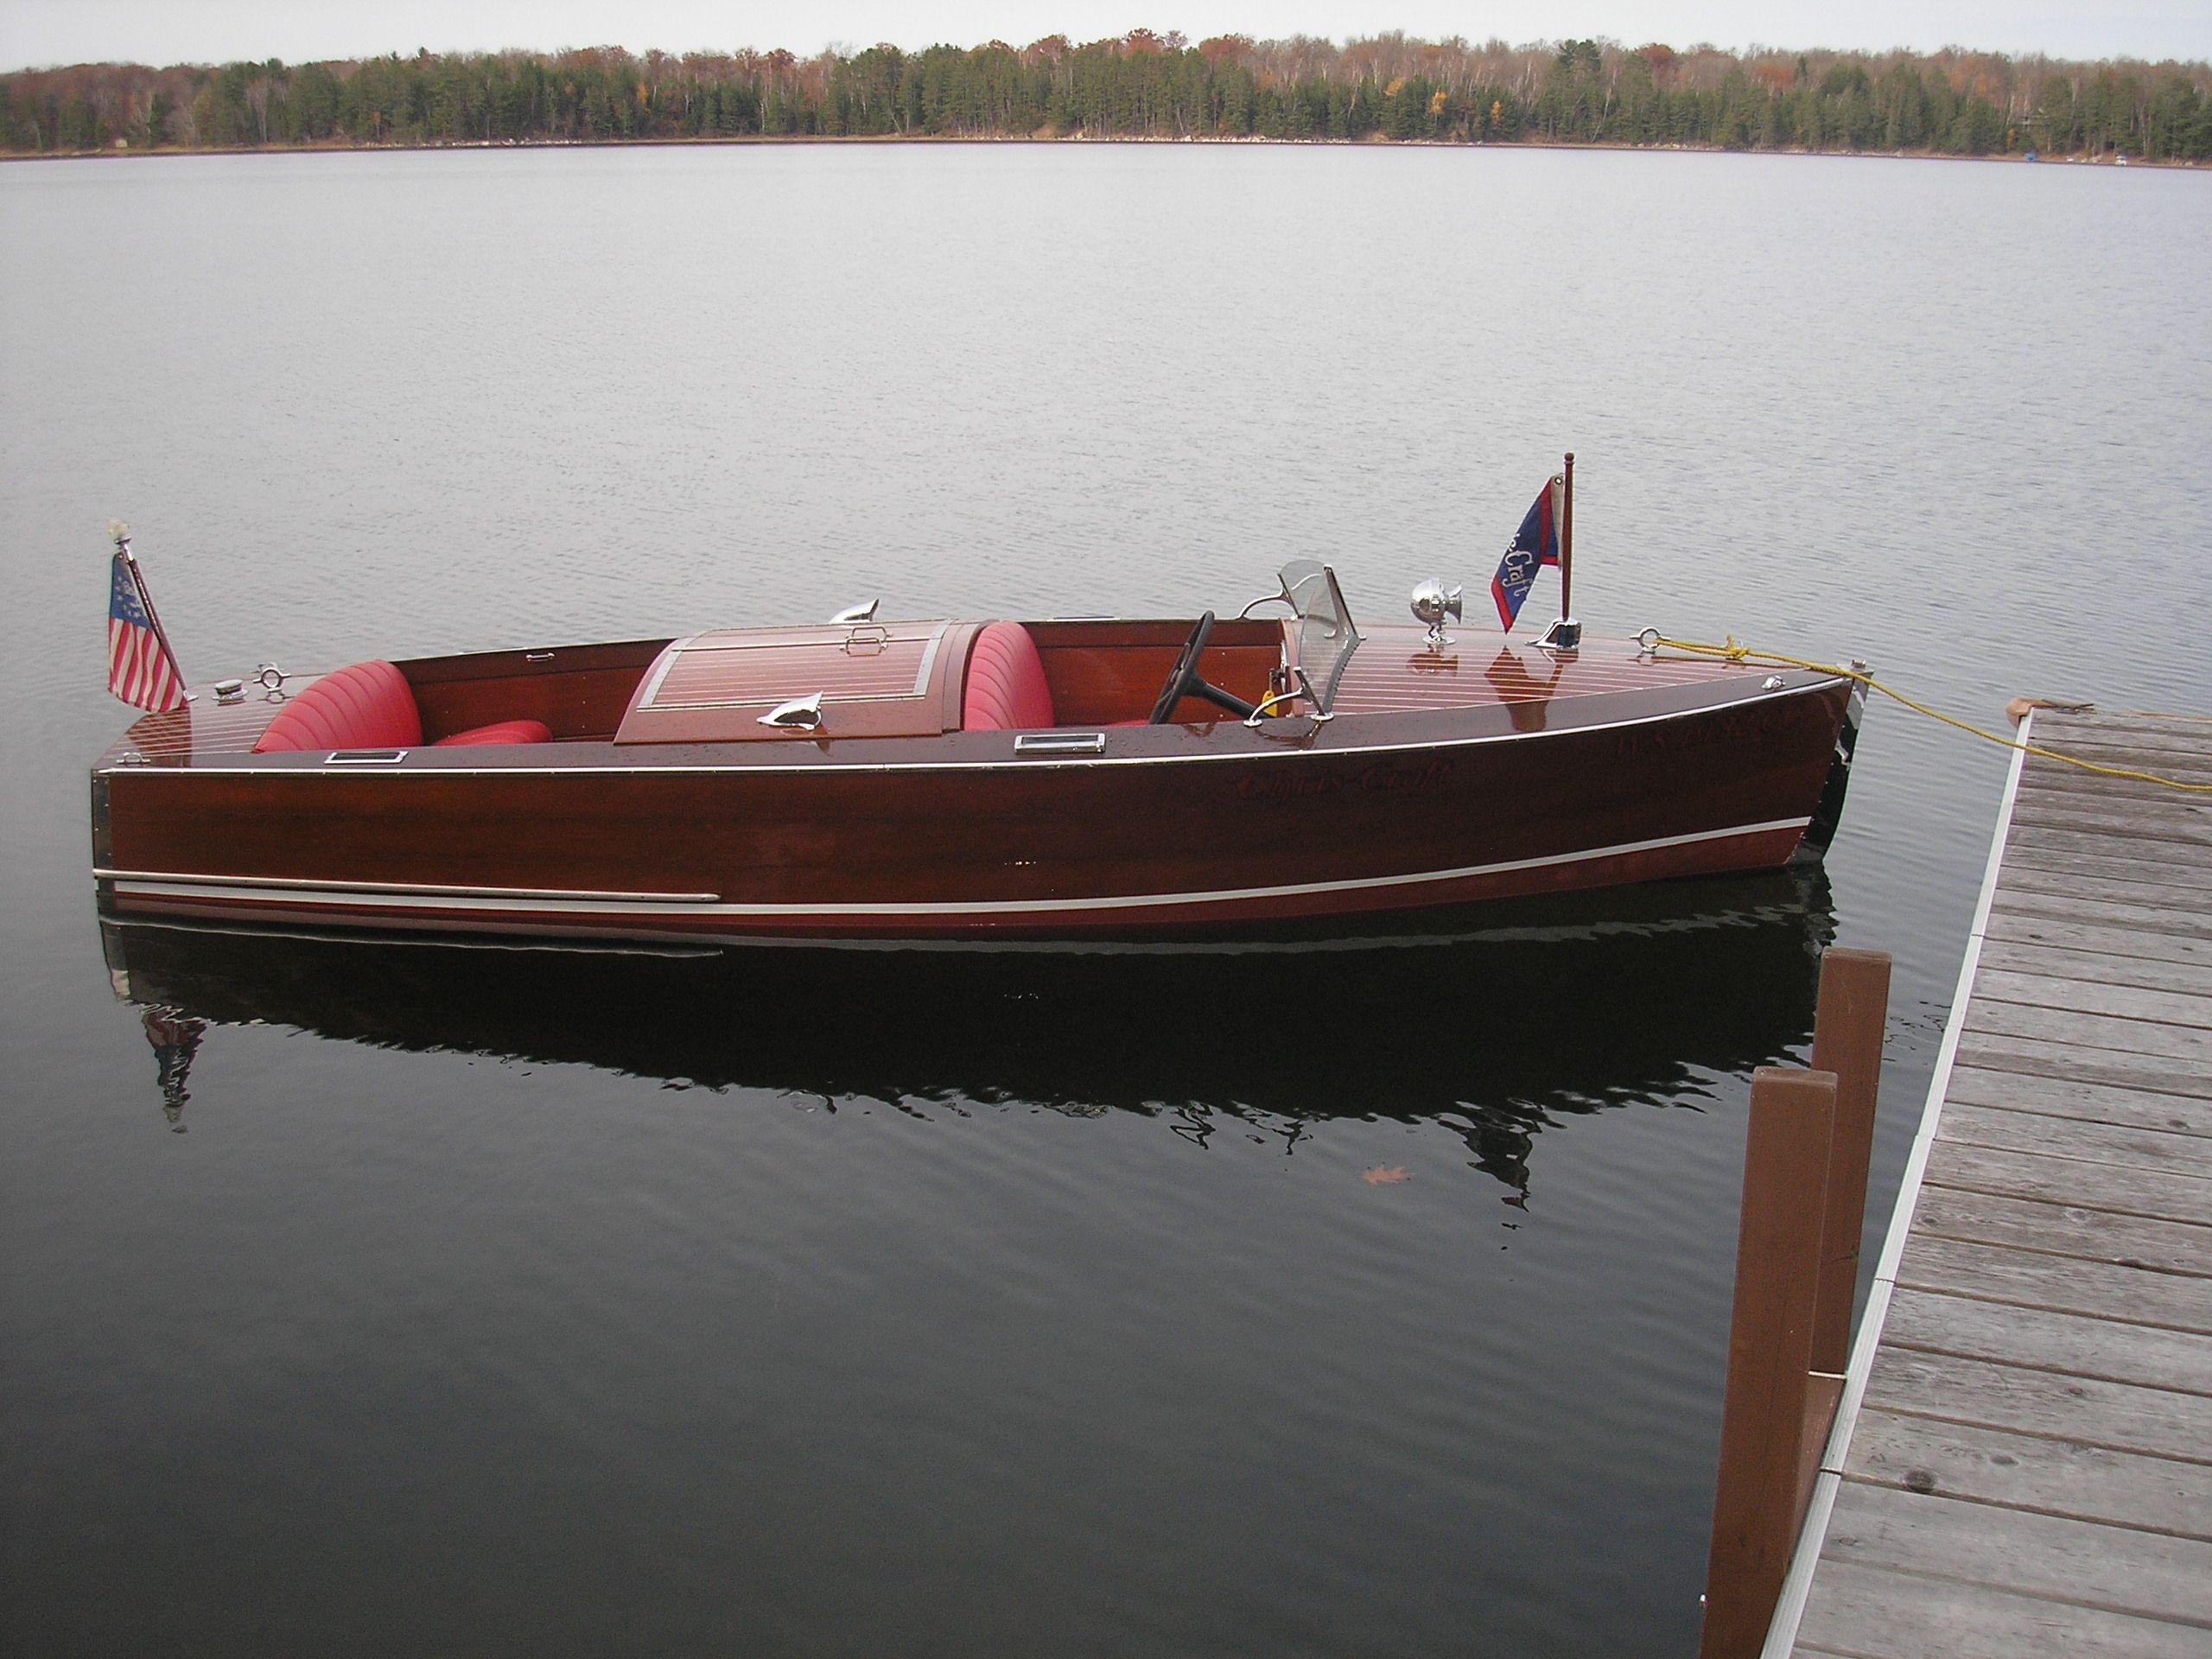 1932 Chris Craft Runabout-miss ours | seashore/all things